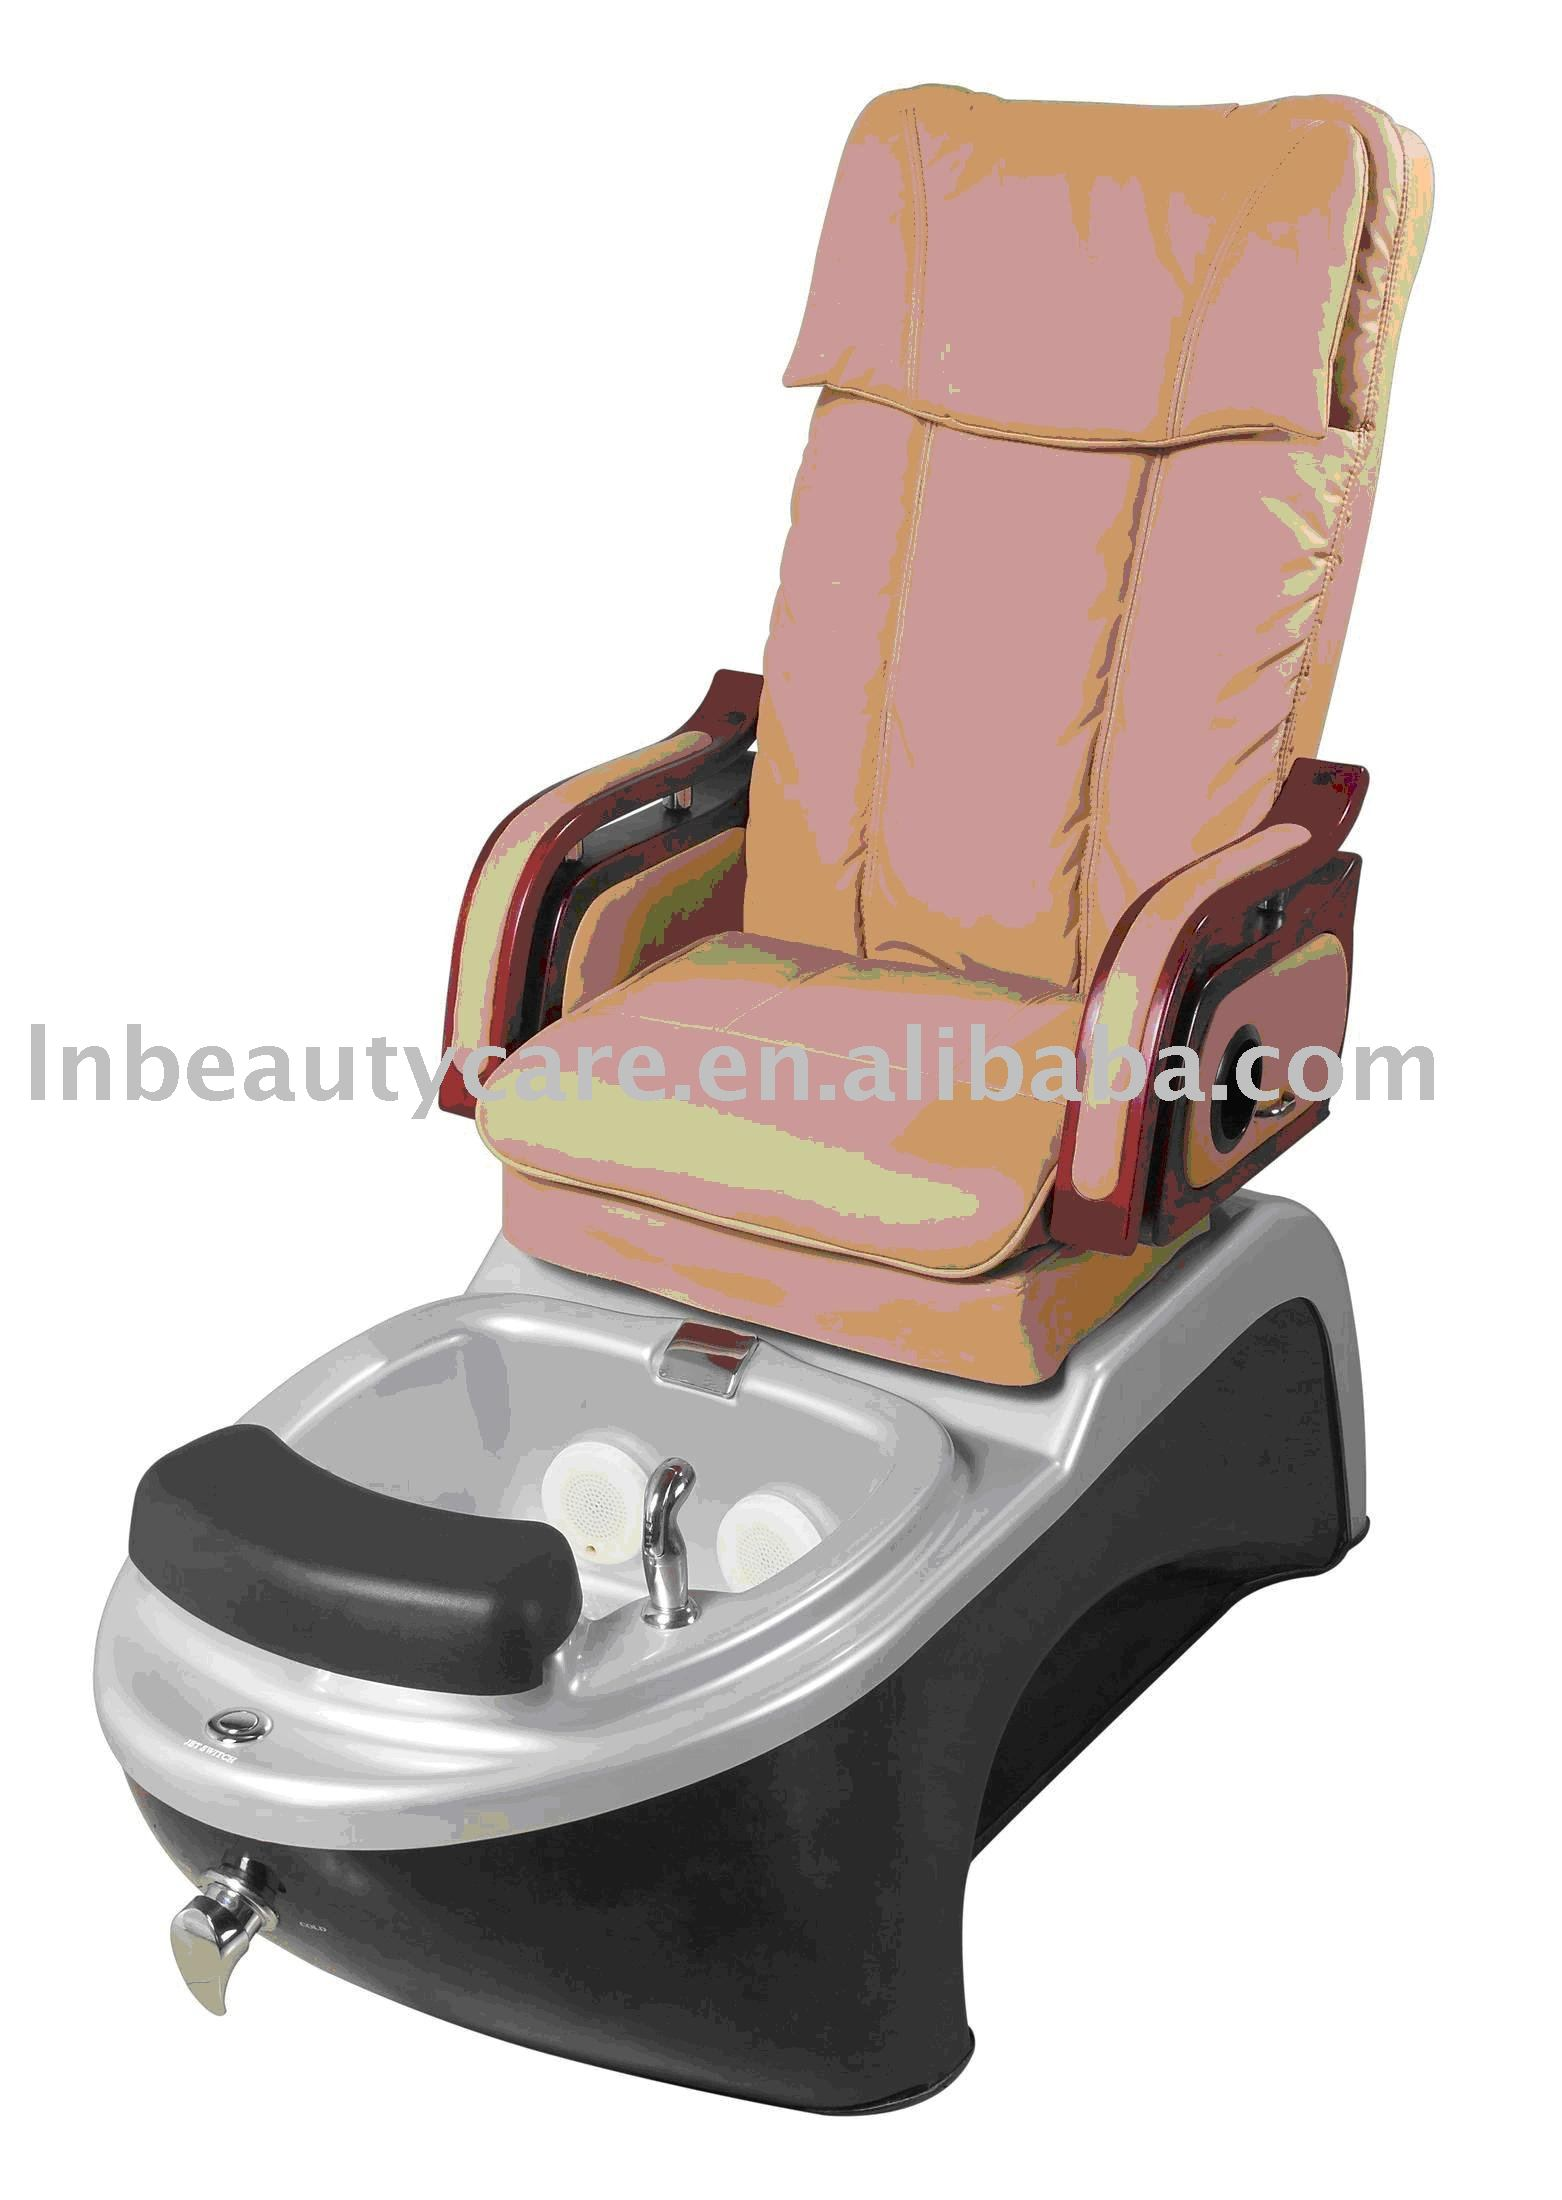 China spa chair pedicure wholesale 🇨🇳 Alibaba